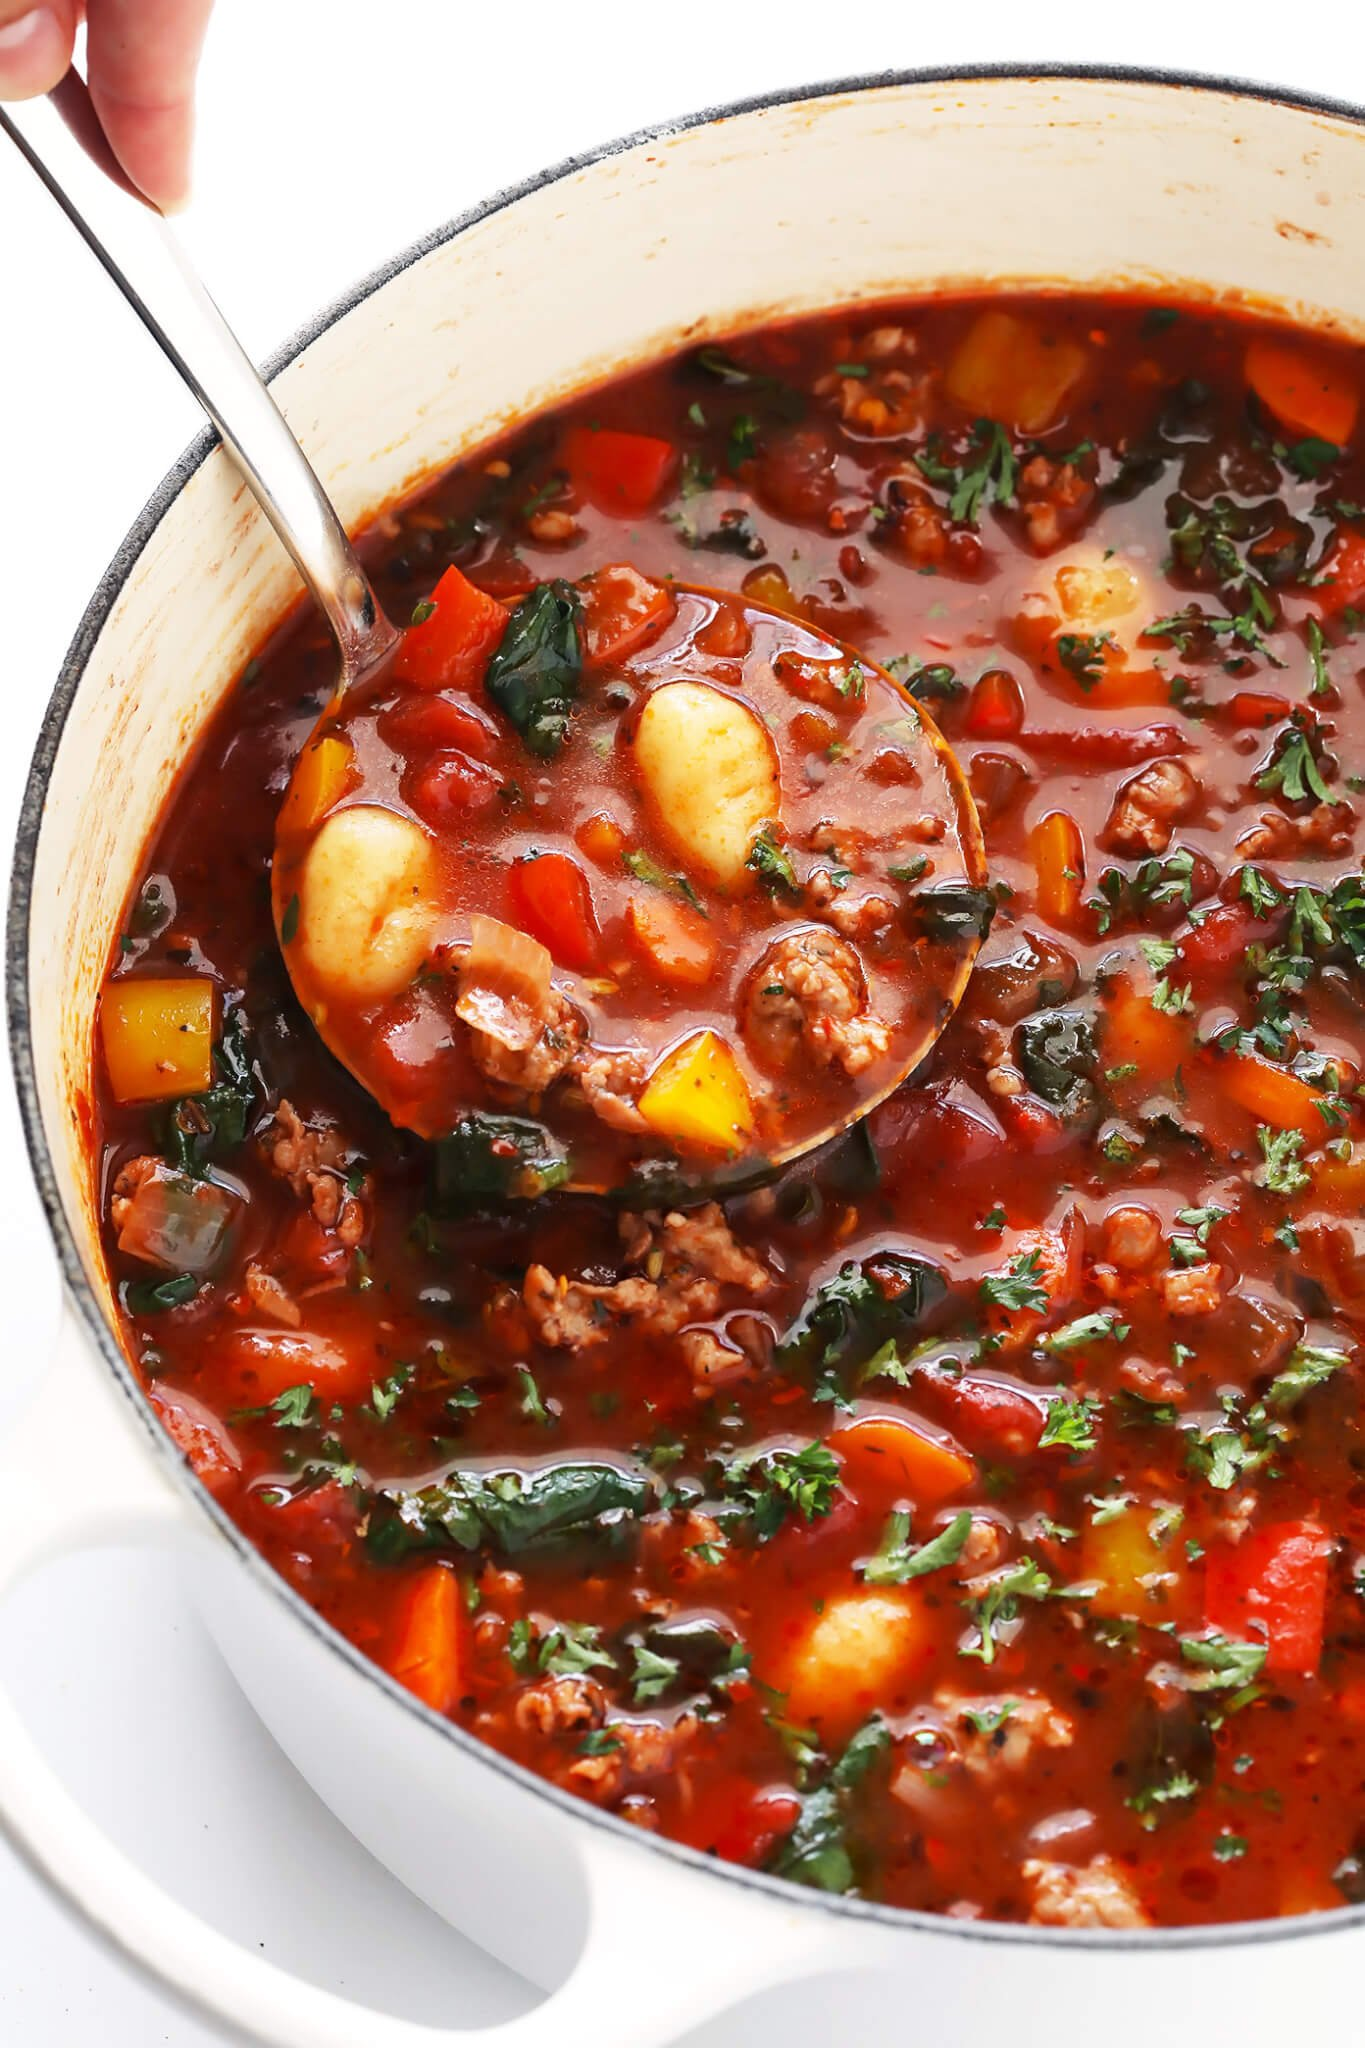 This Italian Sausage, Gnocchi and Tomato Soup recipe is SO cozy and delicious! It's filled with your choice of sausage (pork, chicken, turkey, or vegan), lots of veggies (bell peppers, onions, carrots, celery), lots of tomatoes, tender gnocchi (or diced potatoes), and topped with lots of Parmesan and fresh herbs. Oh, and it's also naturally gluten-free! My kind of comfort food! | gimmesomeoven.com